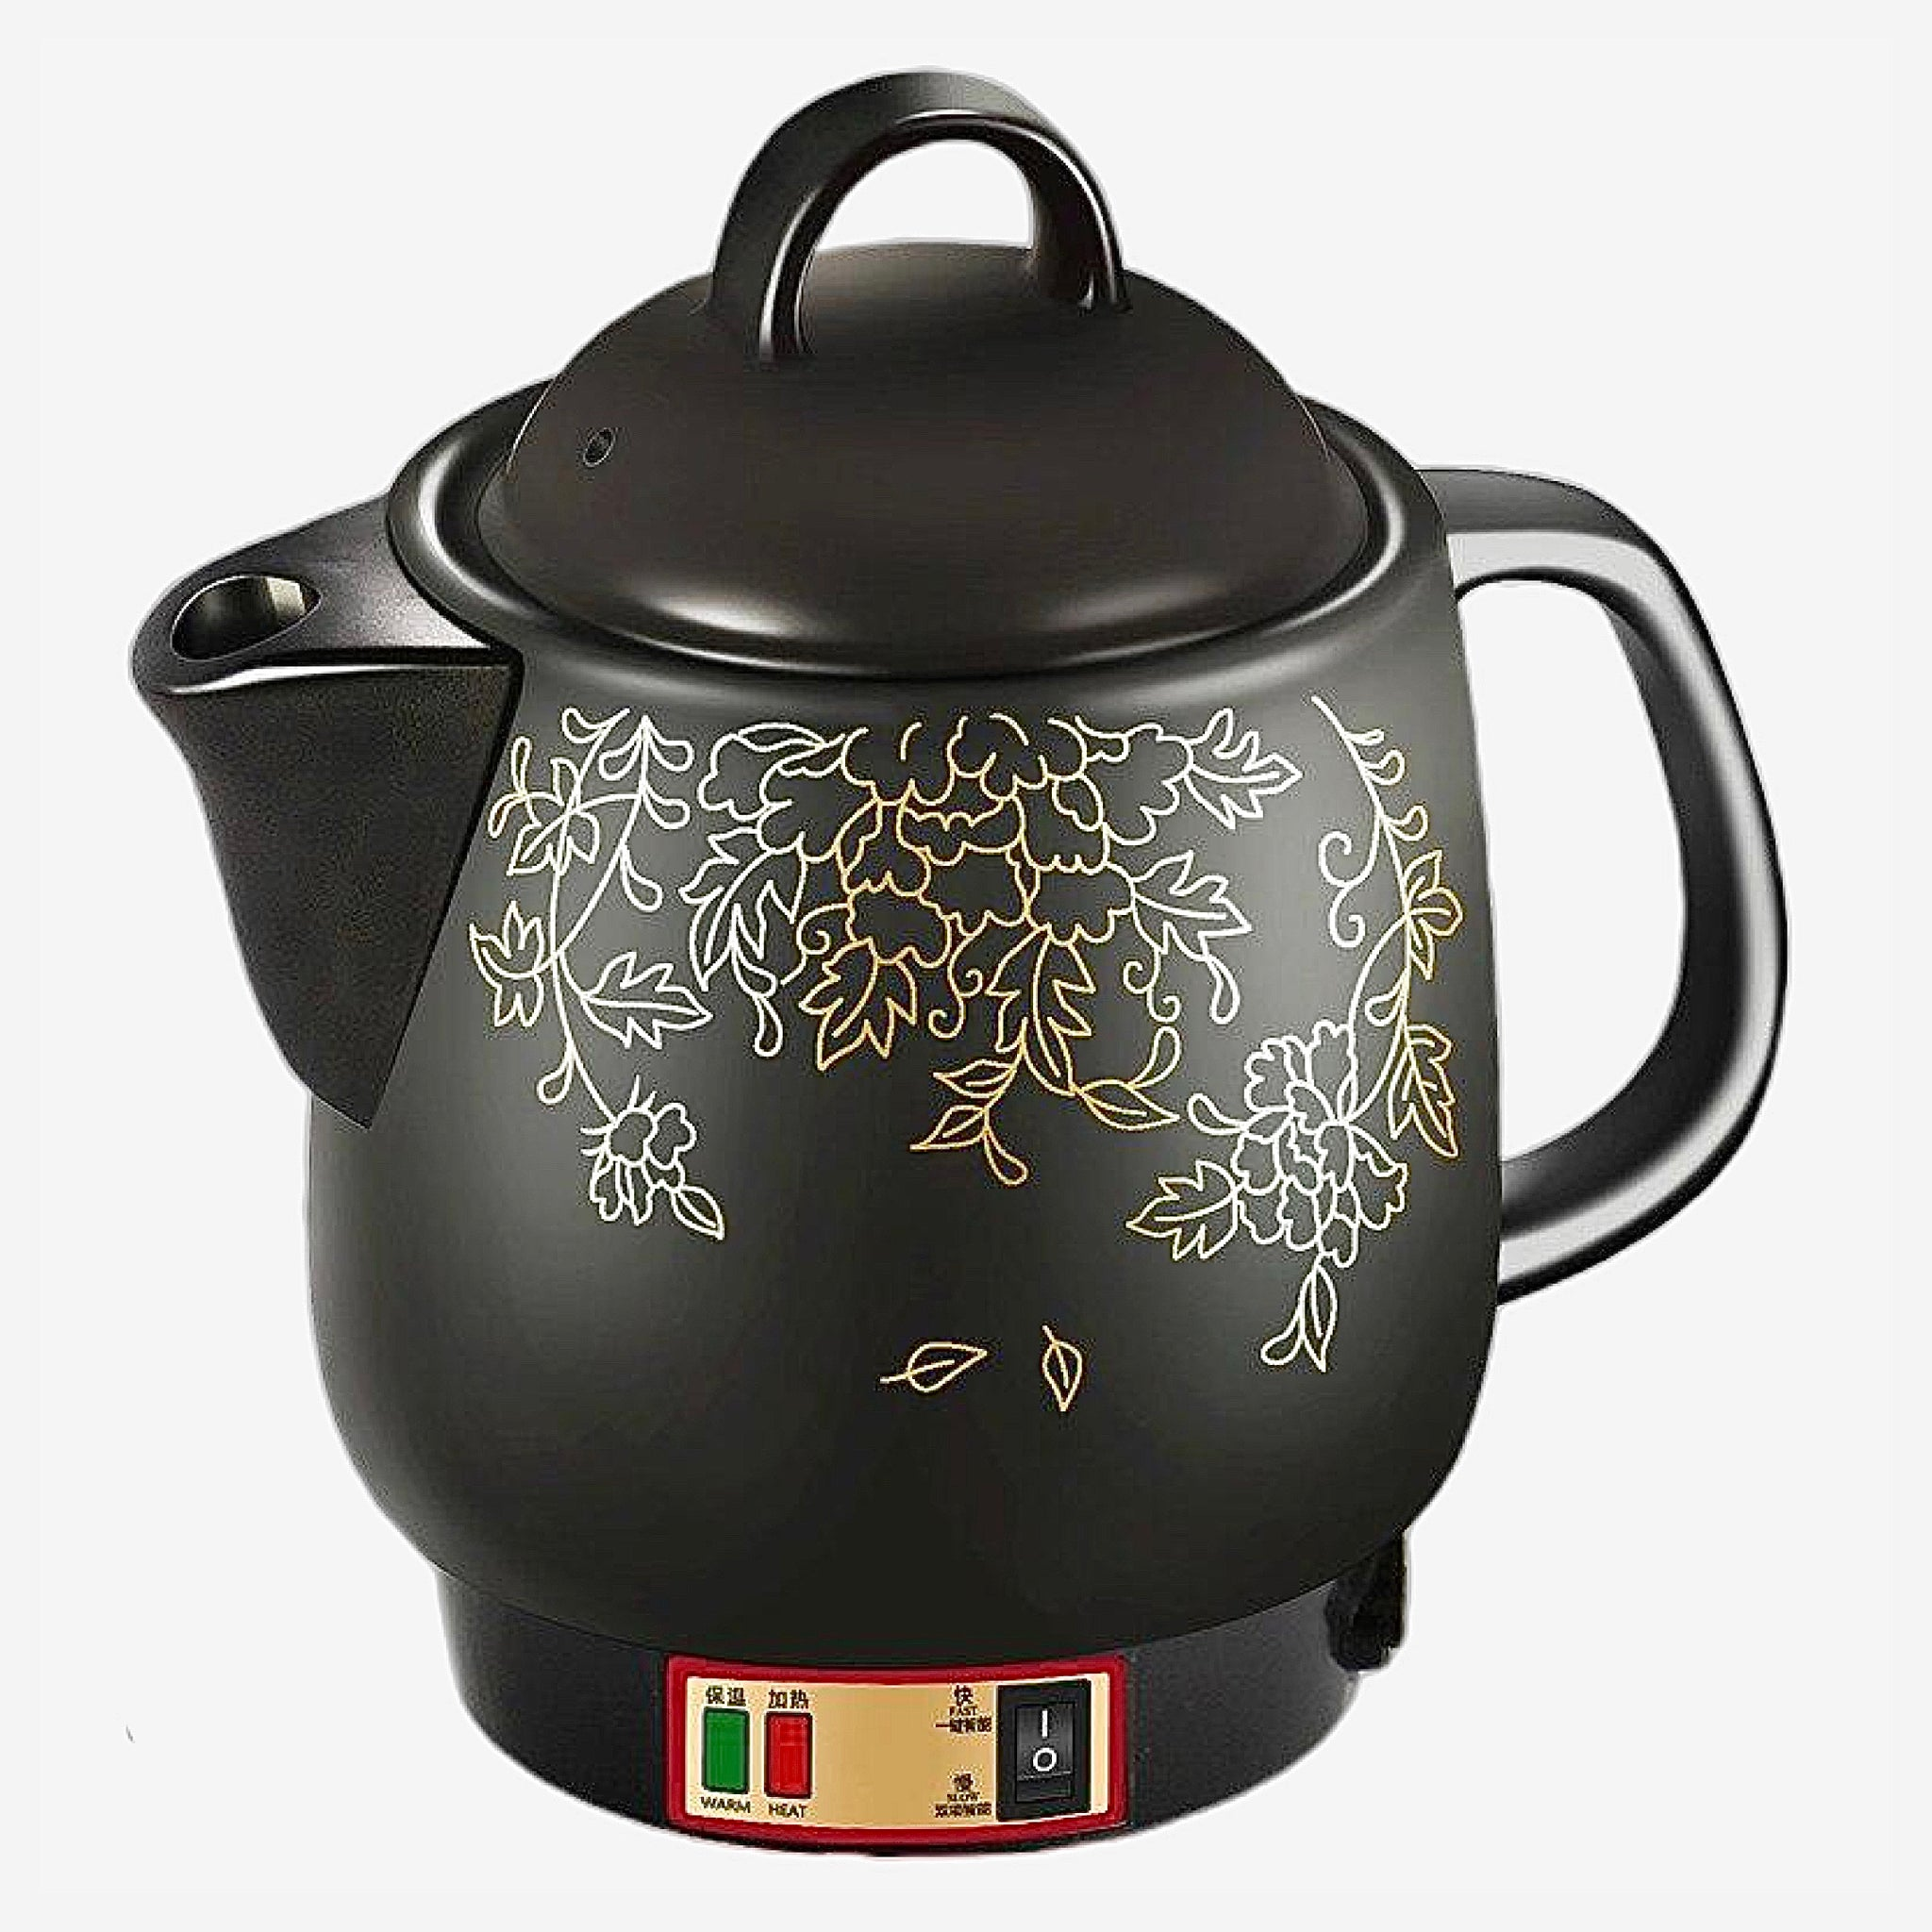 Electric kettle Full automatic decoction of Chinese medicine pot ceramic casserole